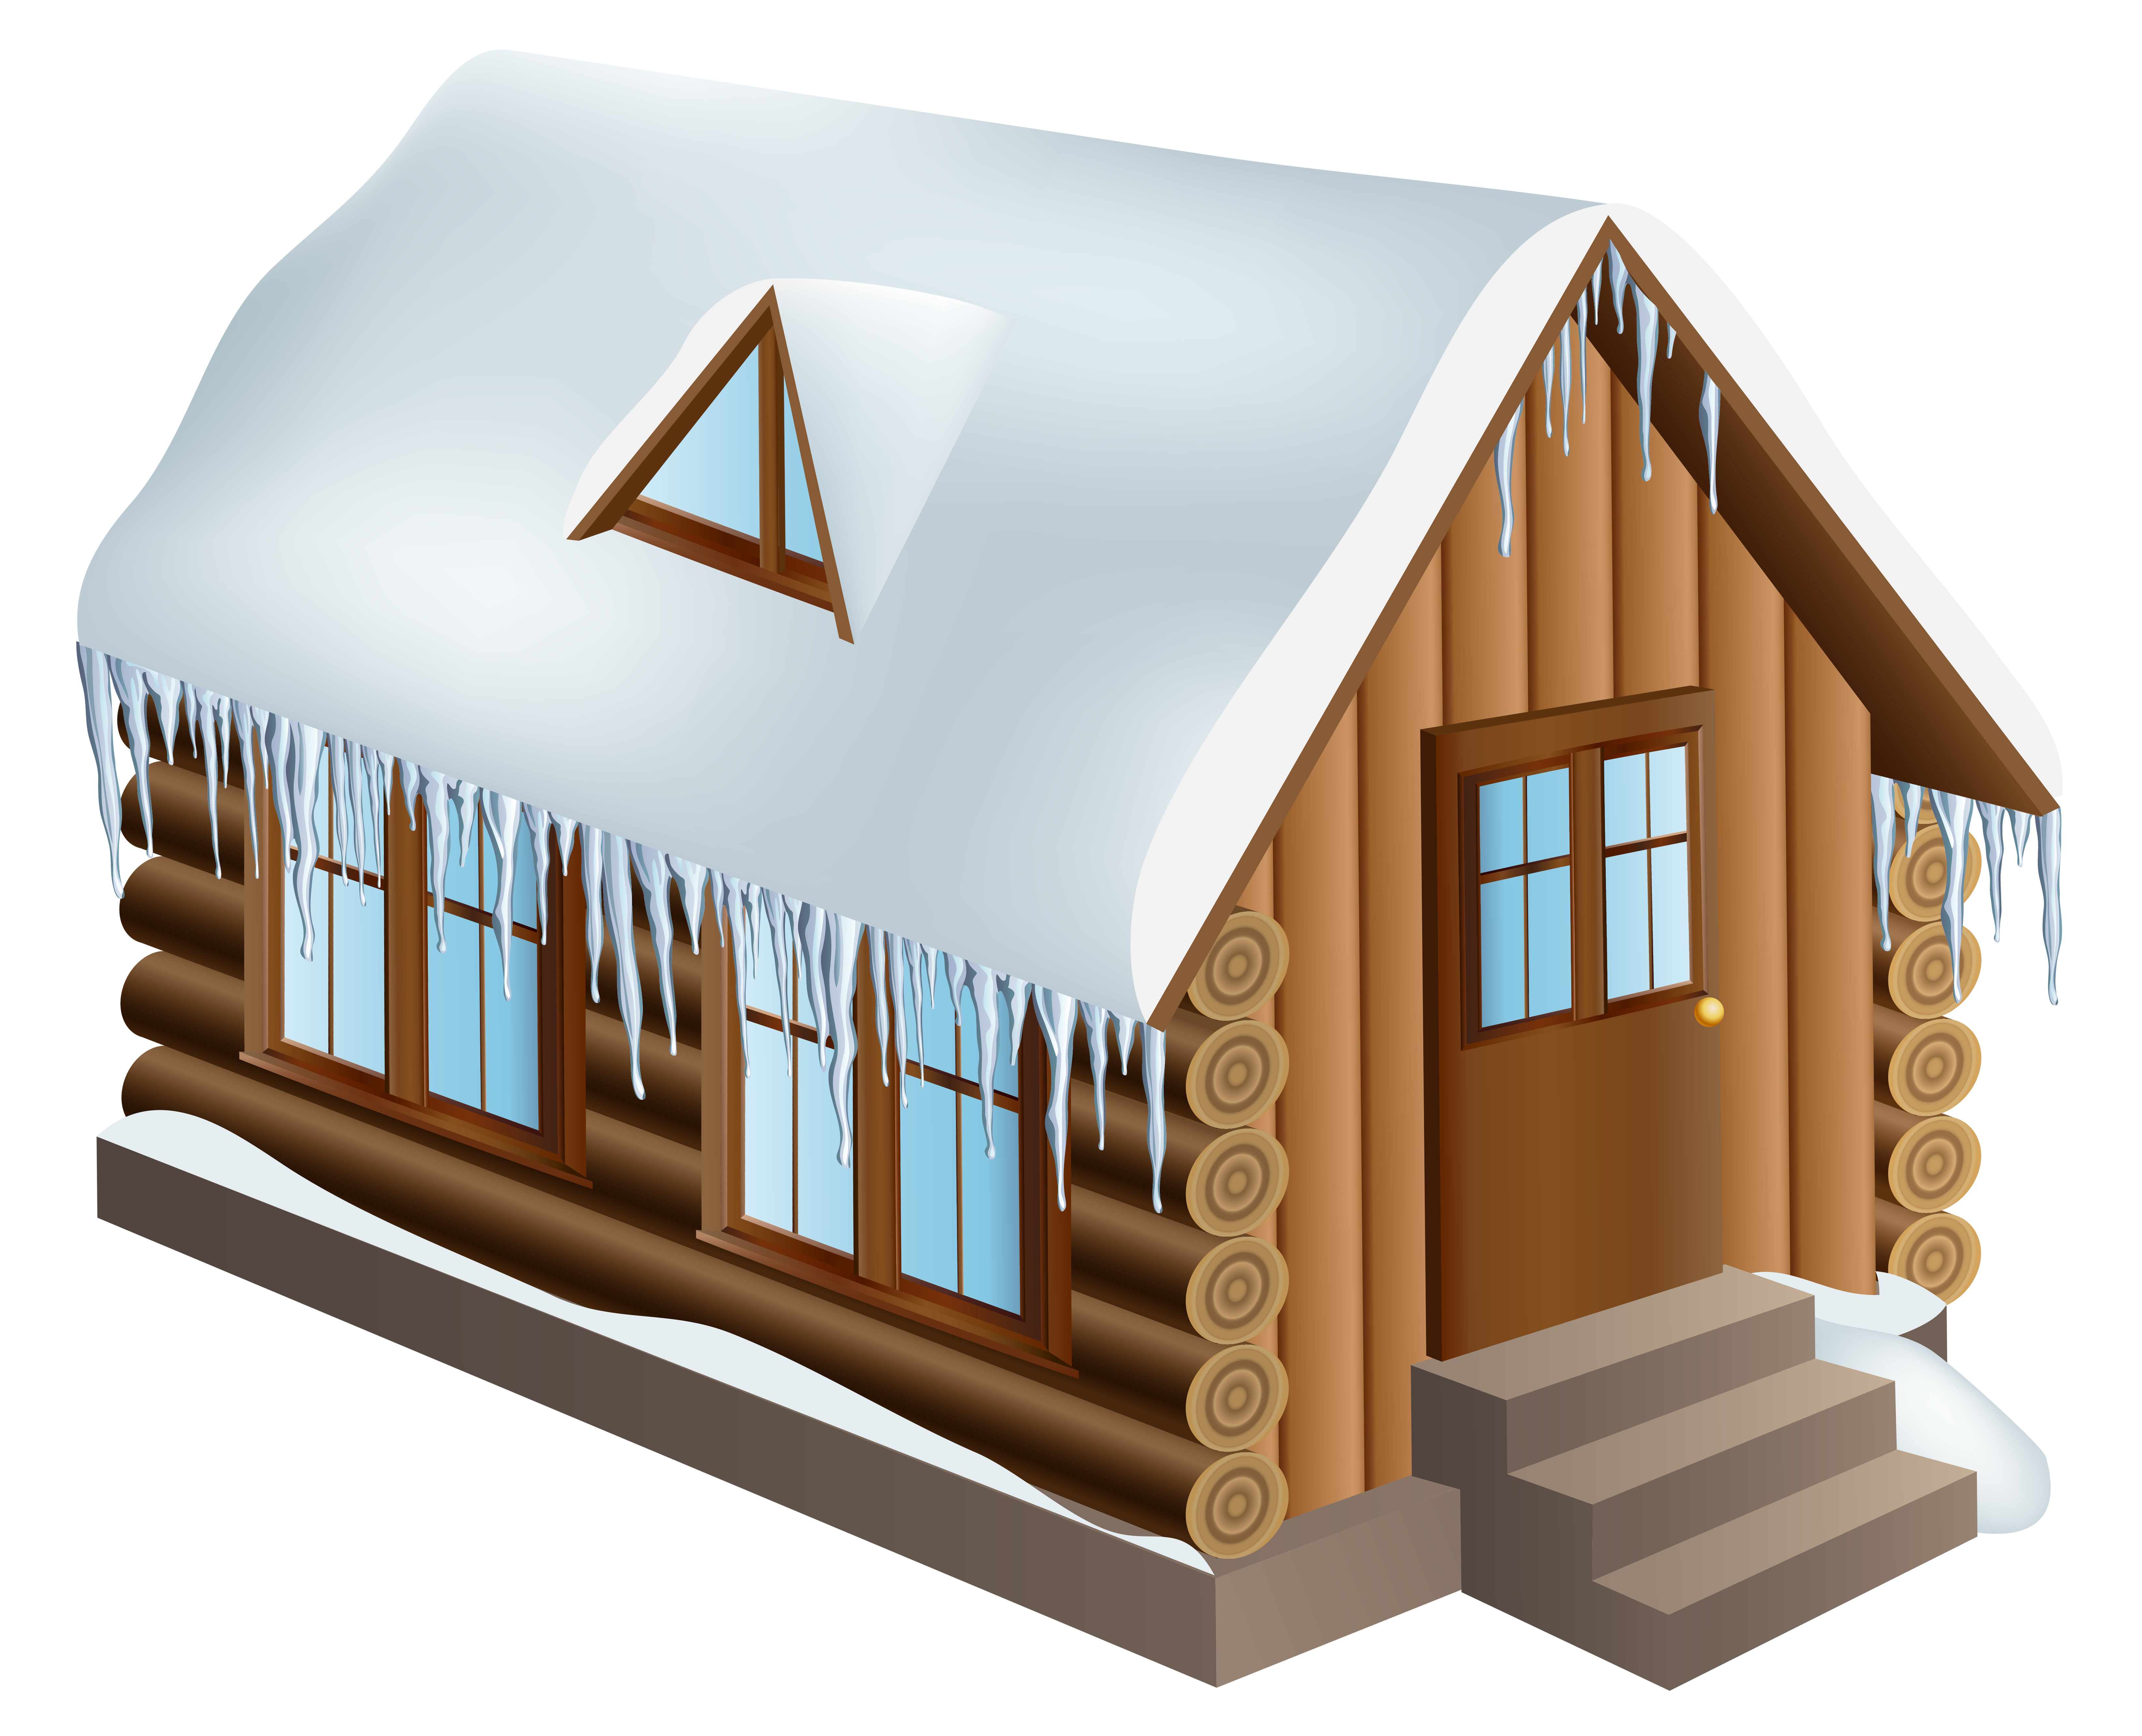 Snow house clipart banner download Snow House Winter Clip art - Winter Cabin House PNG Clip-Art Image ... banner download